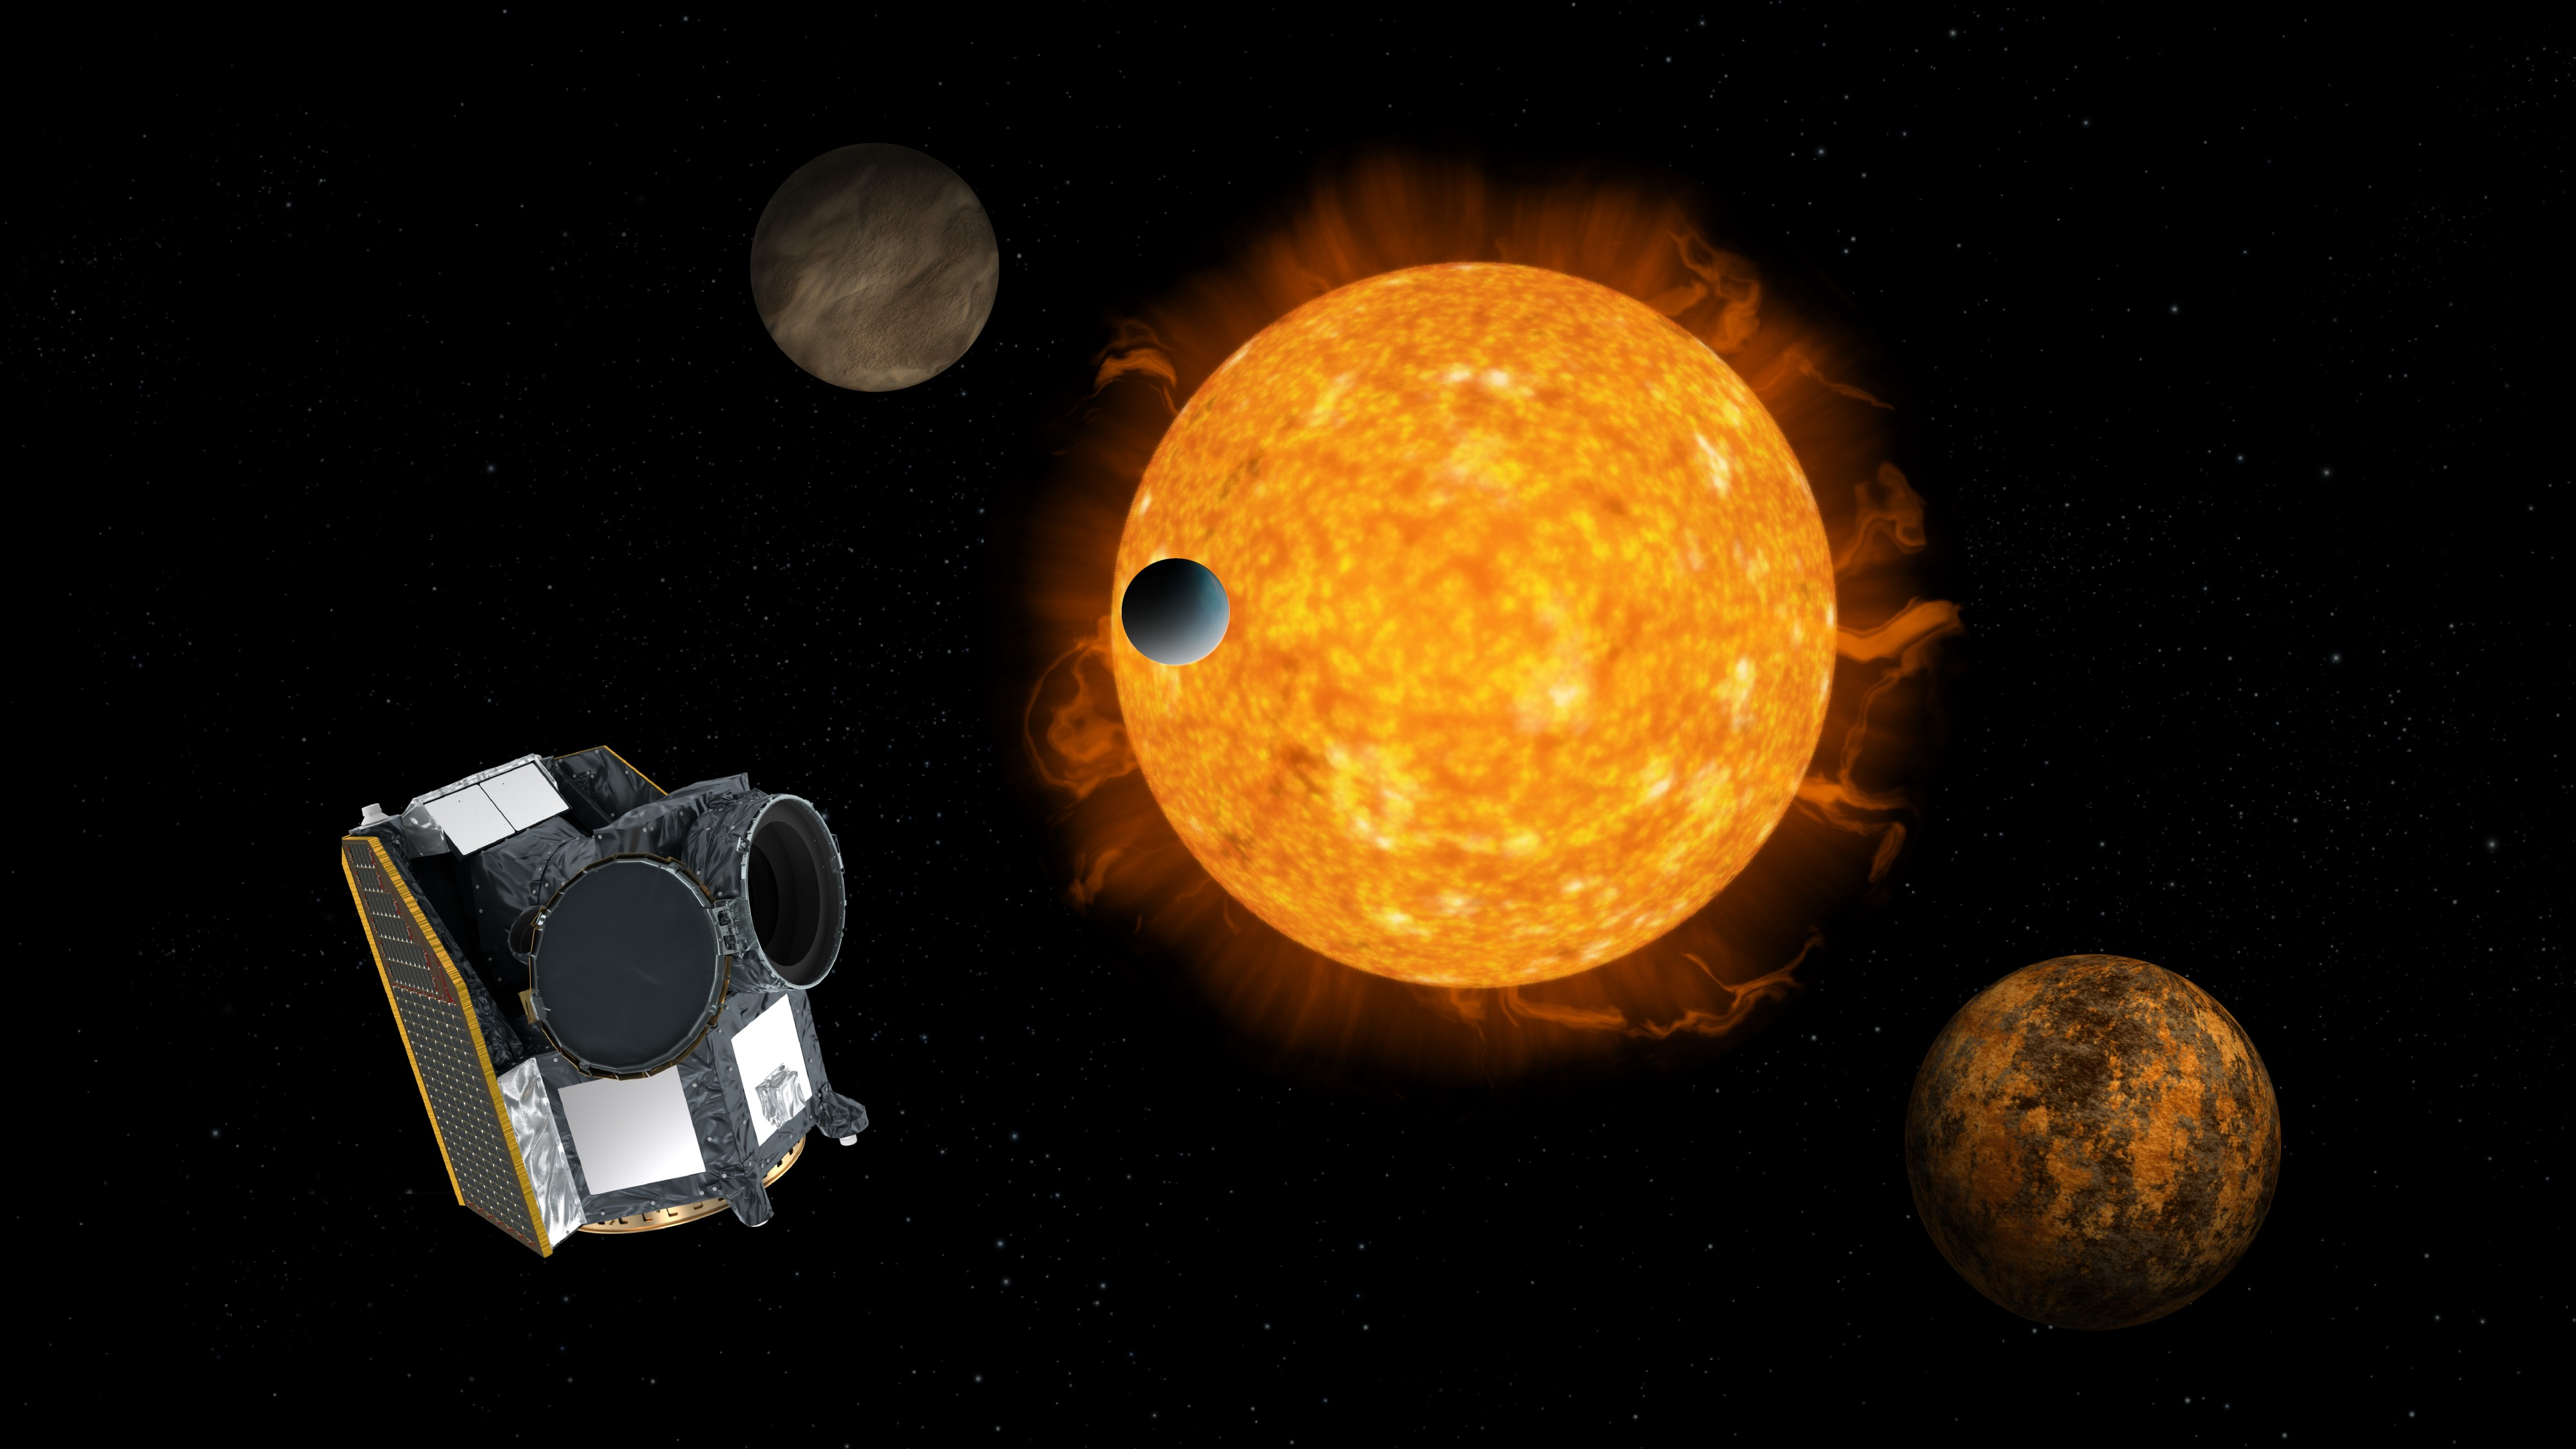 Artist impression of Cheops, the Characterising Exoplanet Satellite, with an exoplanet system in the background.